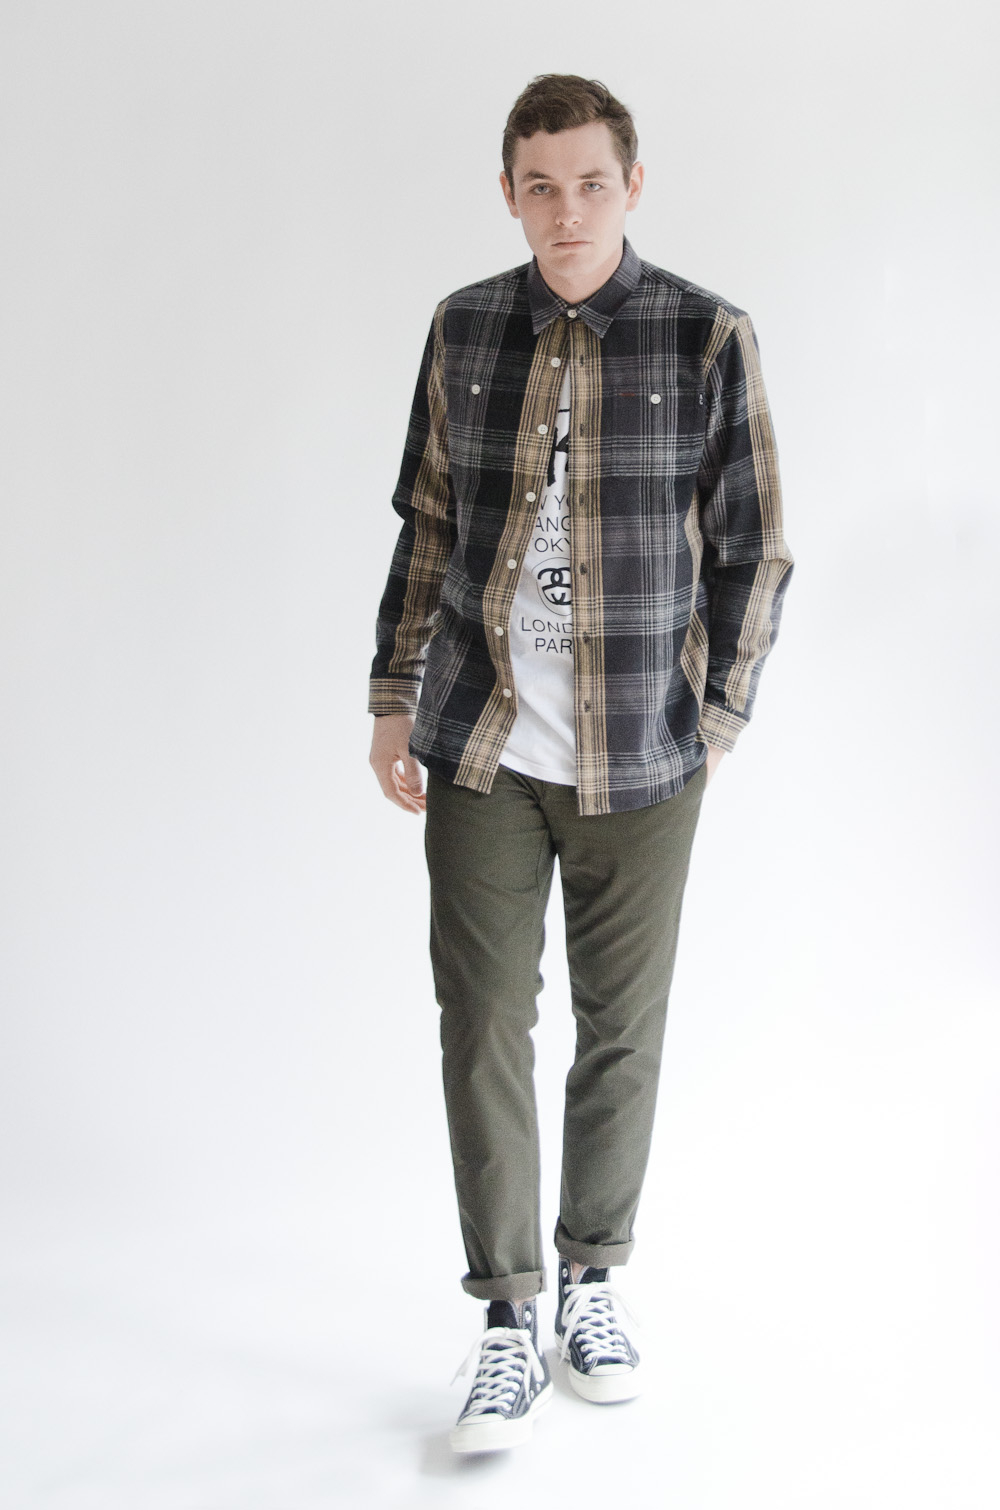 SP14-Lookbook-6.jpg